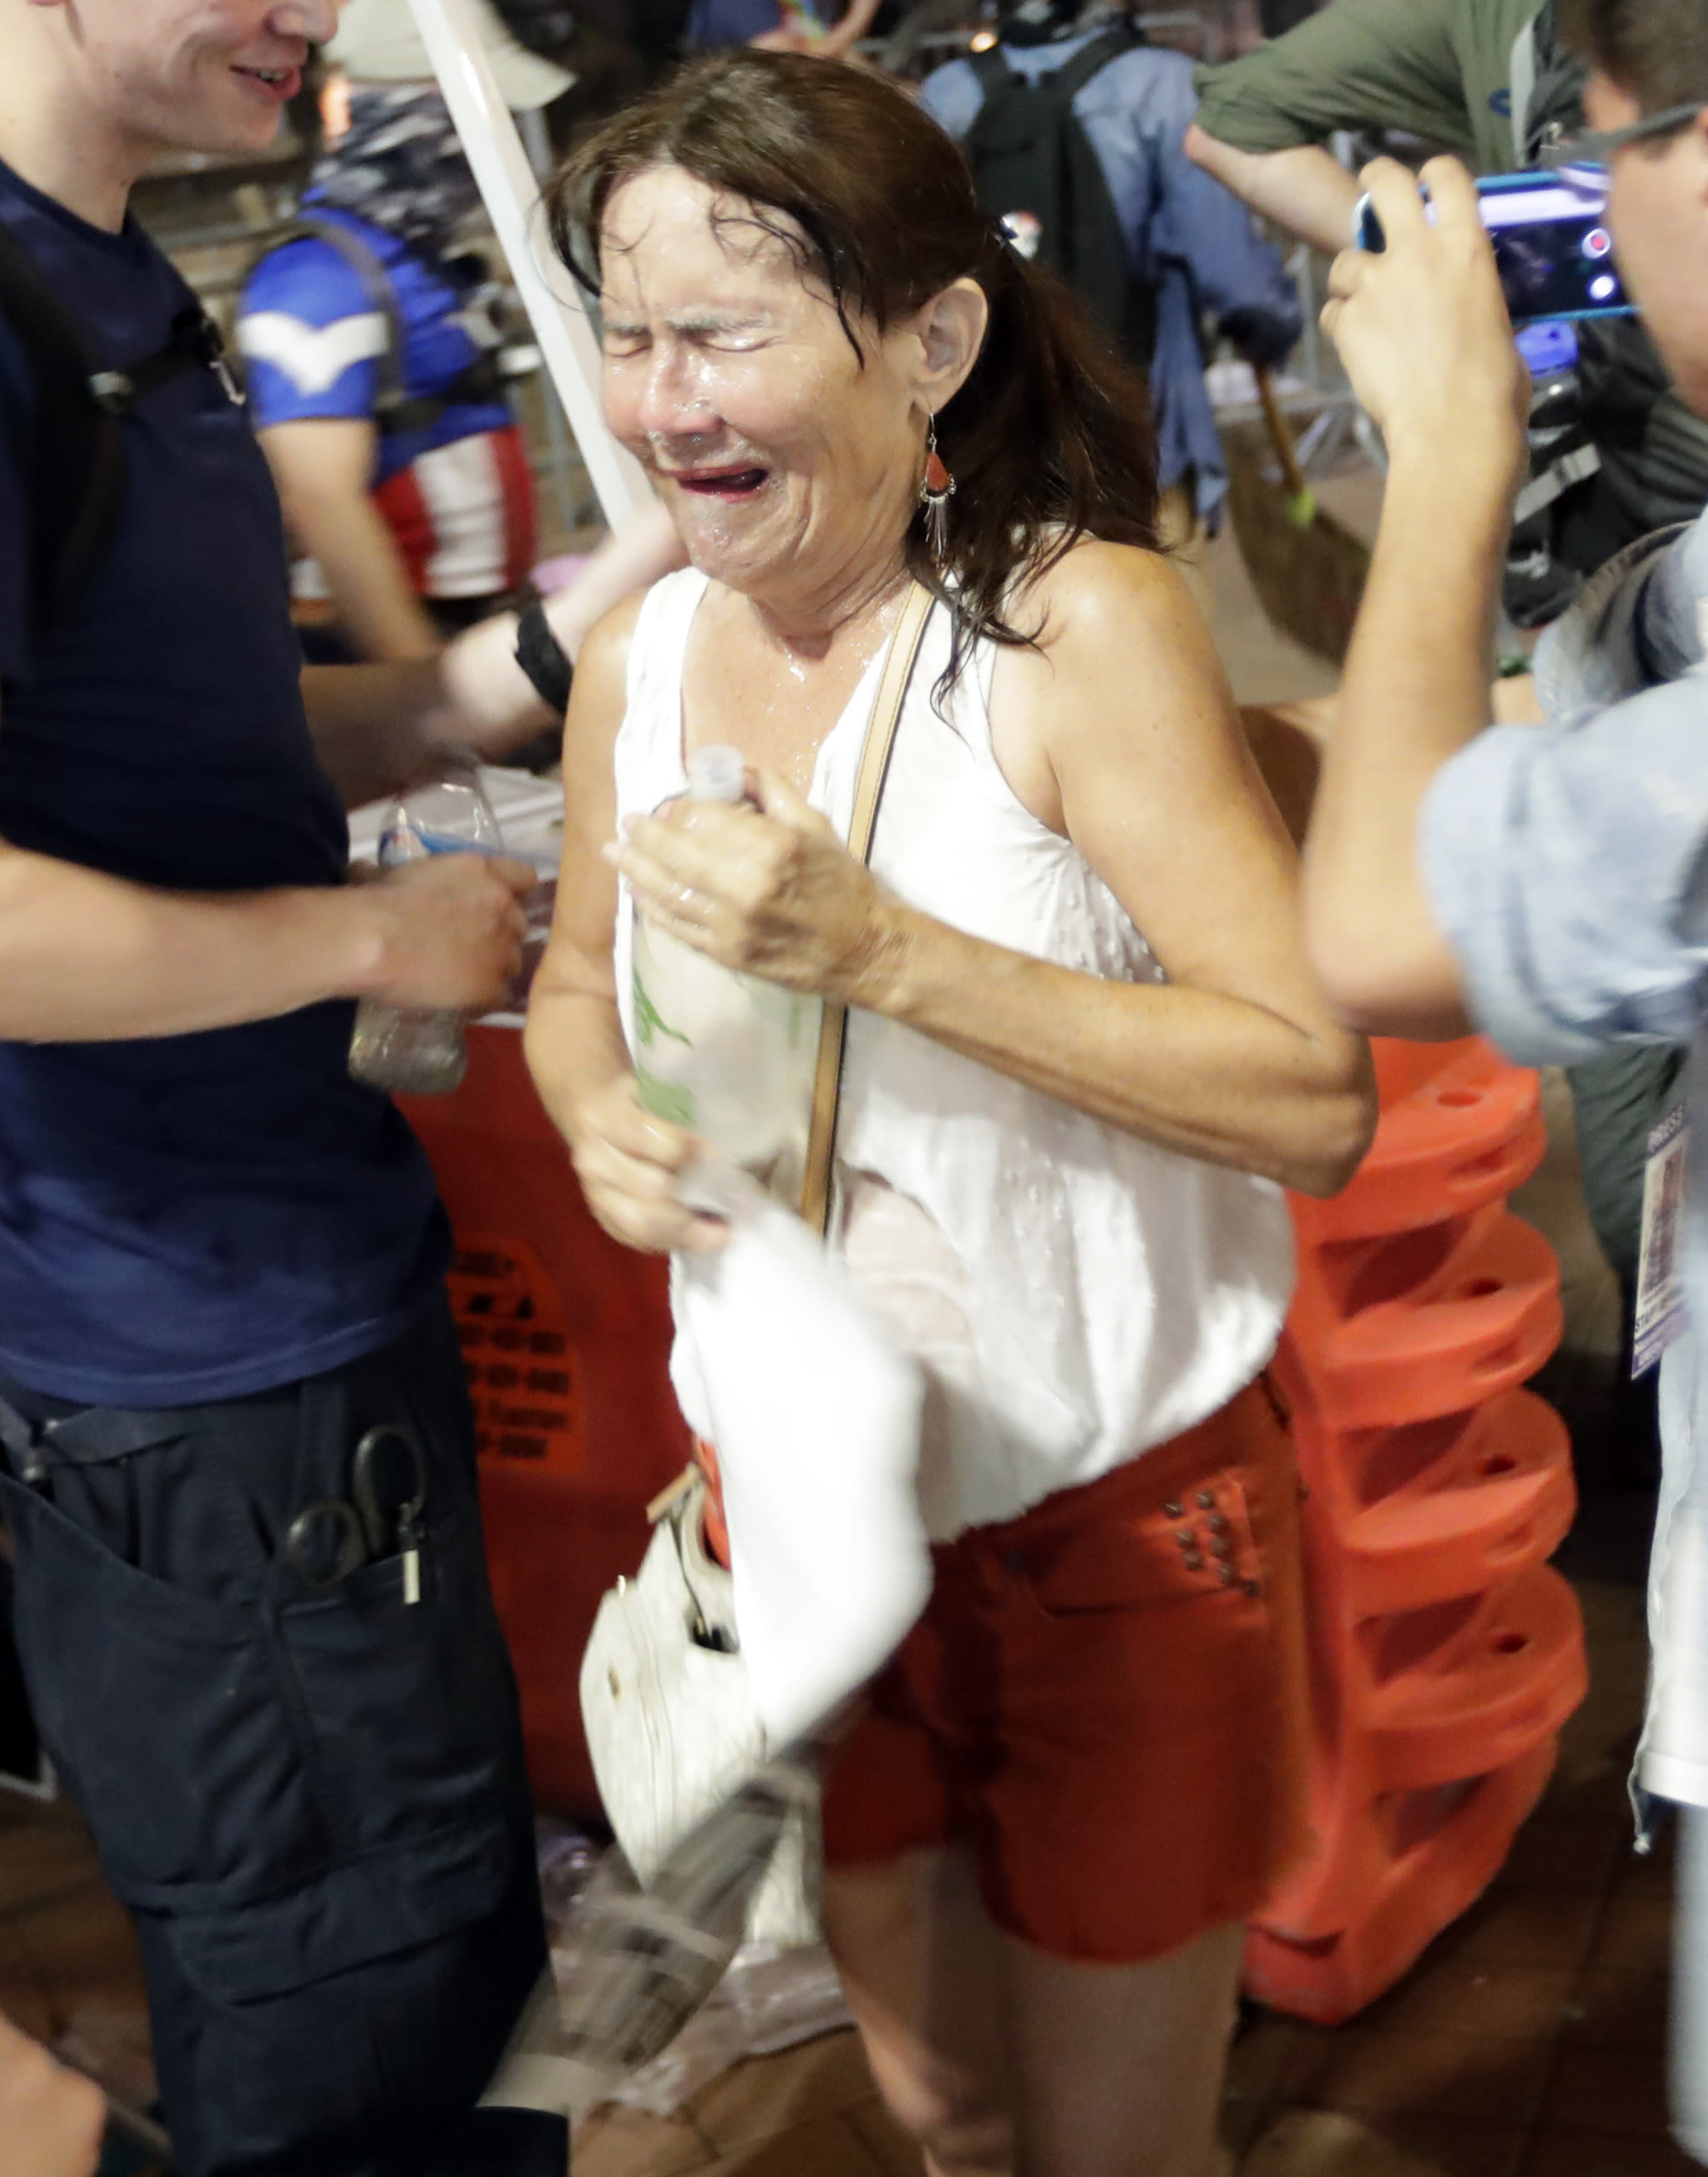 <p>Protesters leave the scene after Phoenix police used pepper spray outside the Phoenix Convention Center, Tuesday, Aug. 22, 2017, in Phoenix. Protests were held against President Donald Trump as he hosted a rally inside the convention center. (AP Photo/Matt York) </p>